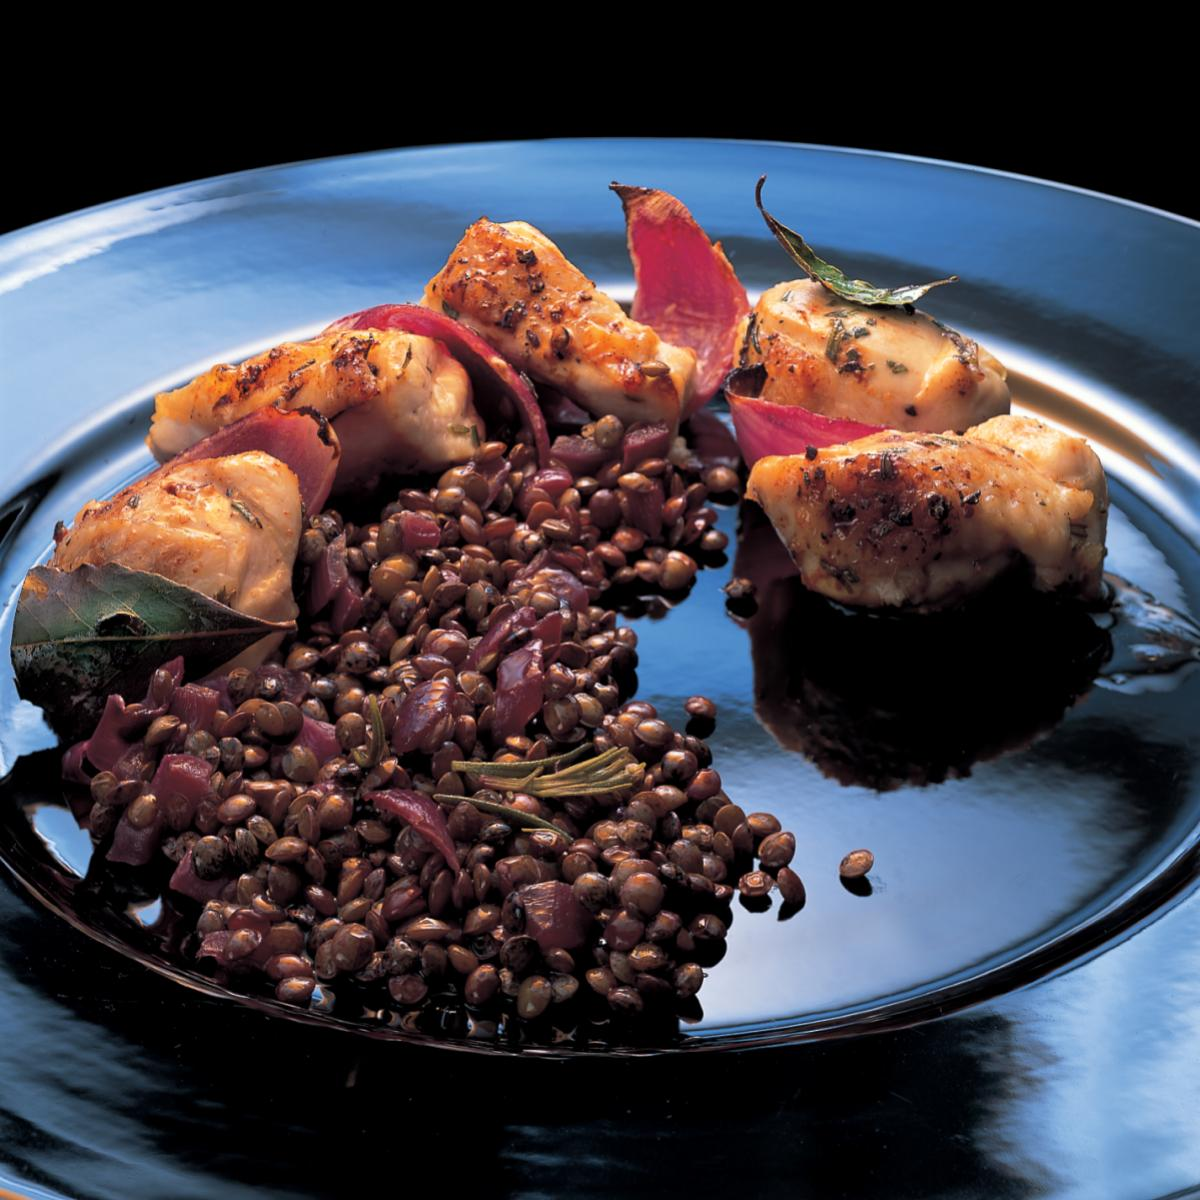 A picture of Delia's Grilled Chicken with Lemon, Garlic and Rosemary, served with Puy Lentils recipe